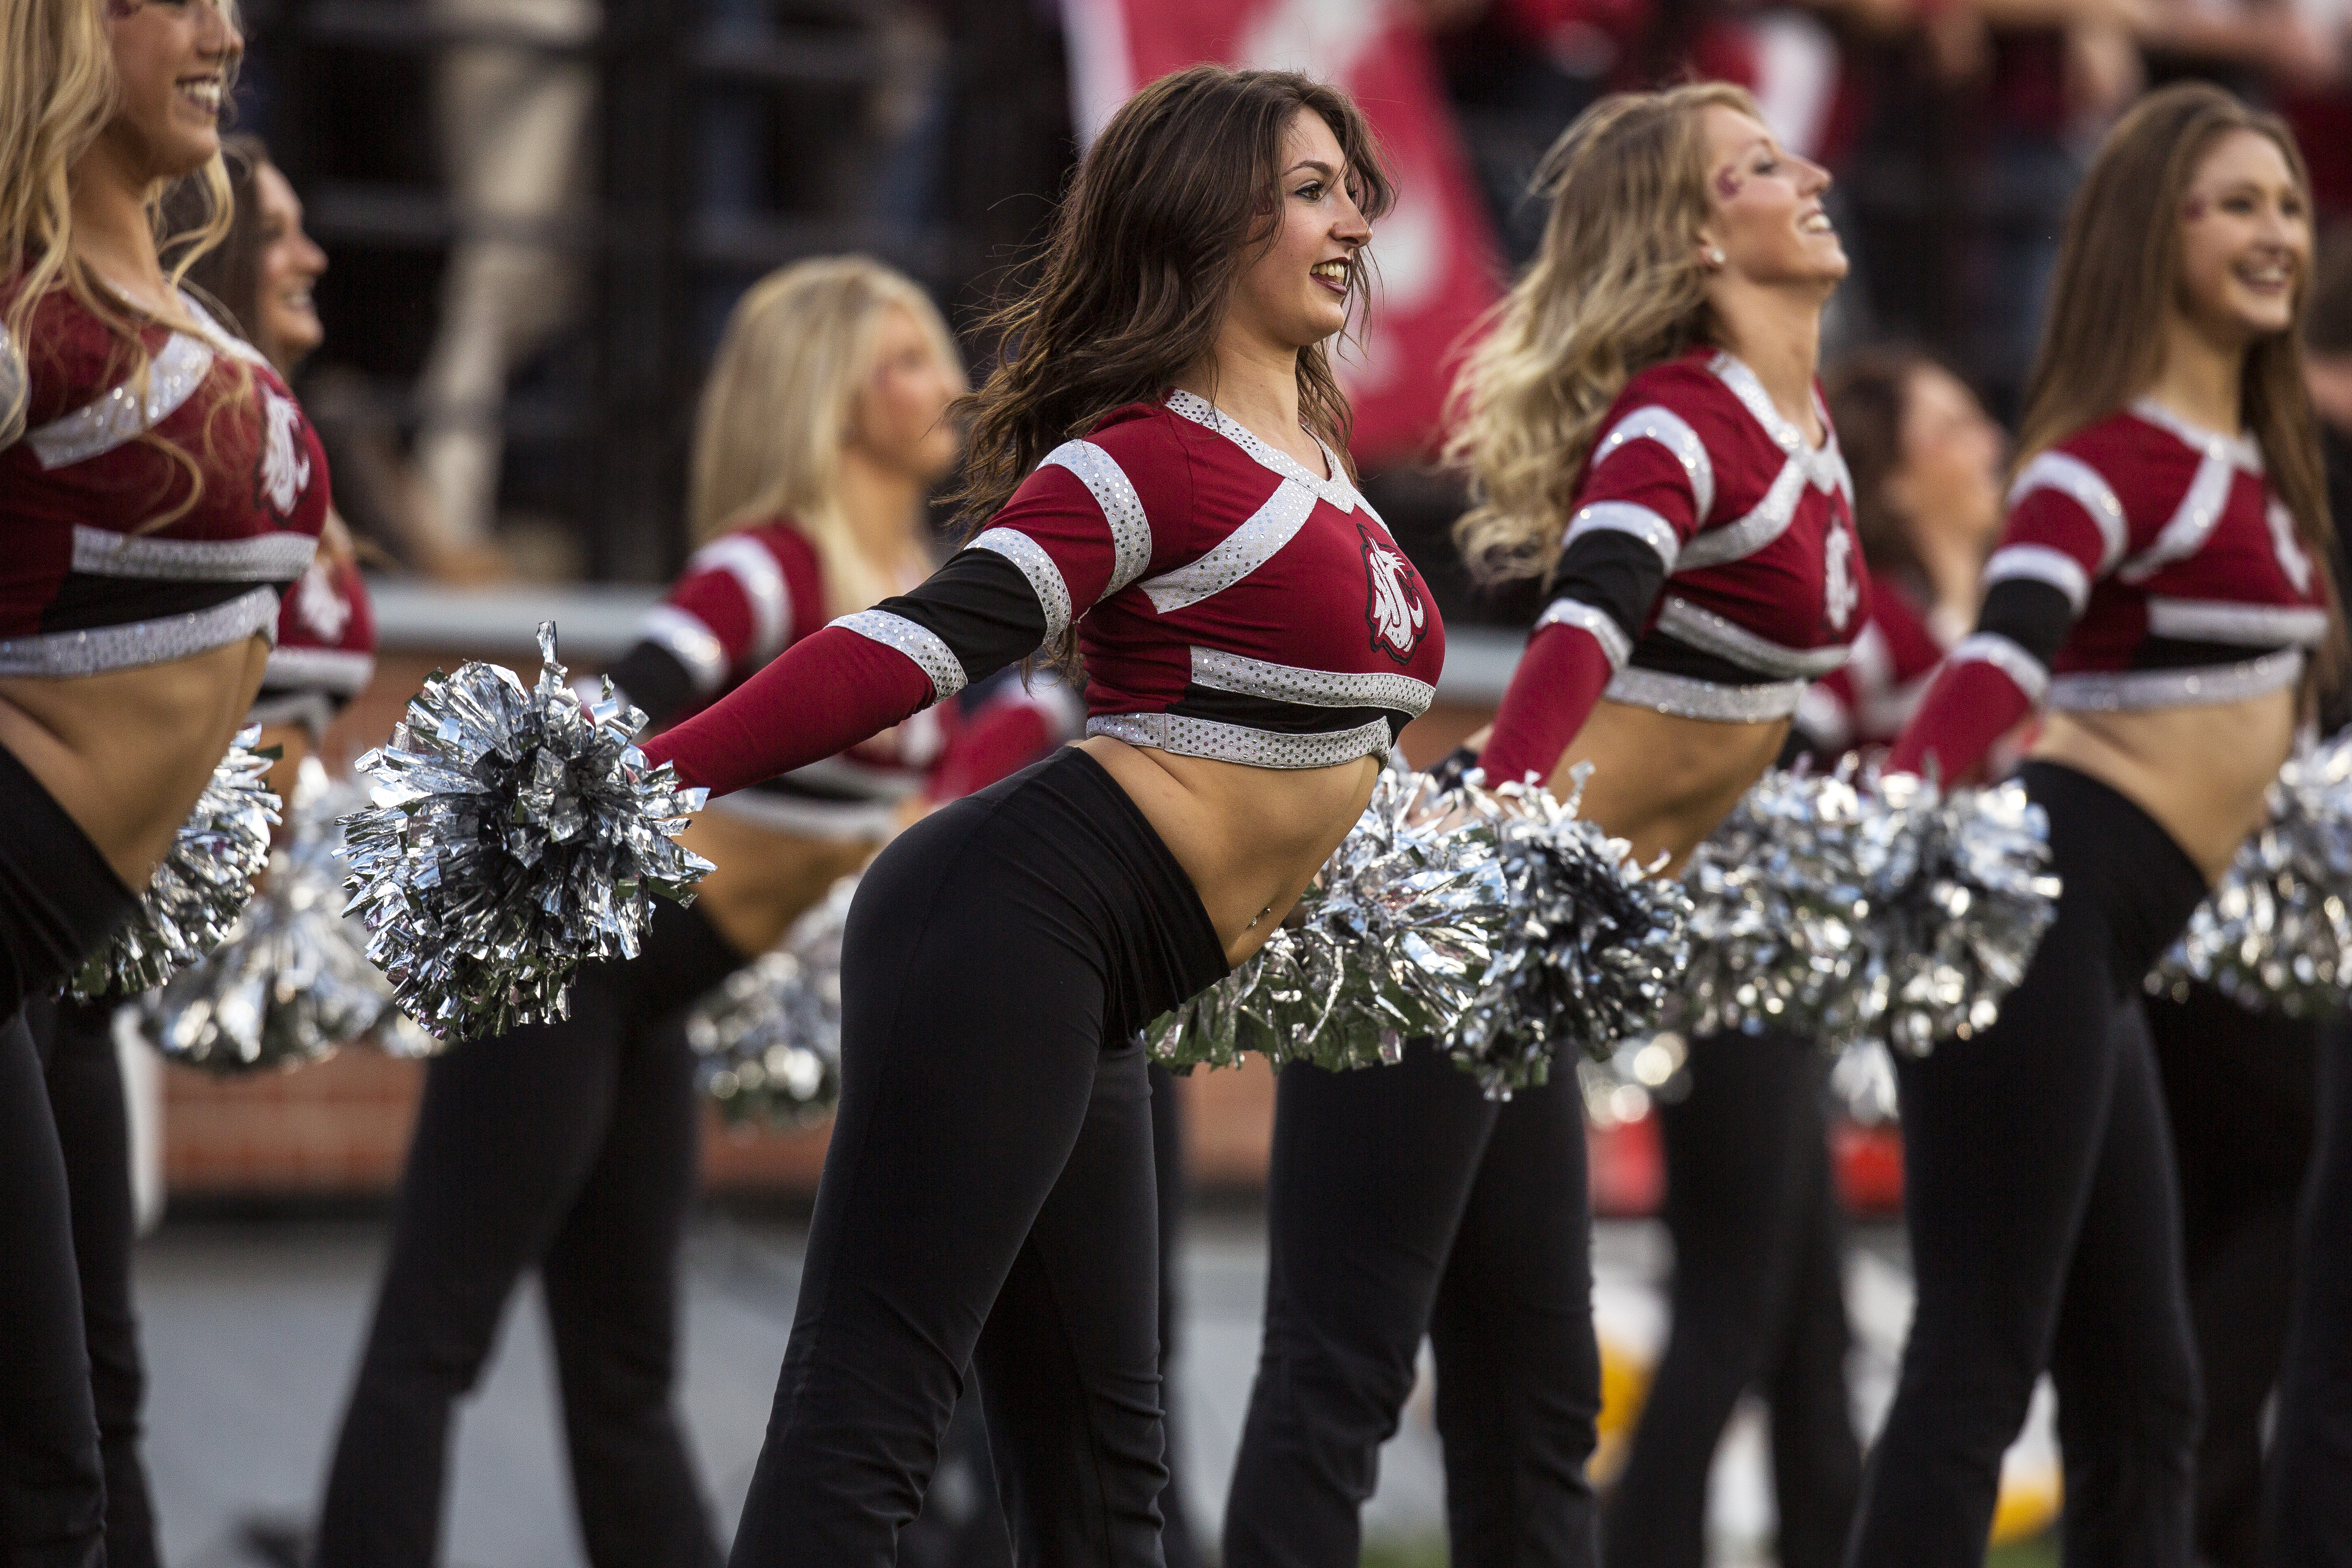 Members of the Washington State Crimson Girls dance team perform during a second quarter timeout in an NCAA college football game against Arizona on Saturday, Oct. 25, 2014, at Martin Stadium in Pullman, Wash. Arizona won 59-37. (AP Photo/Dean Hare)